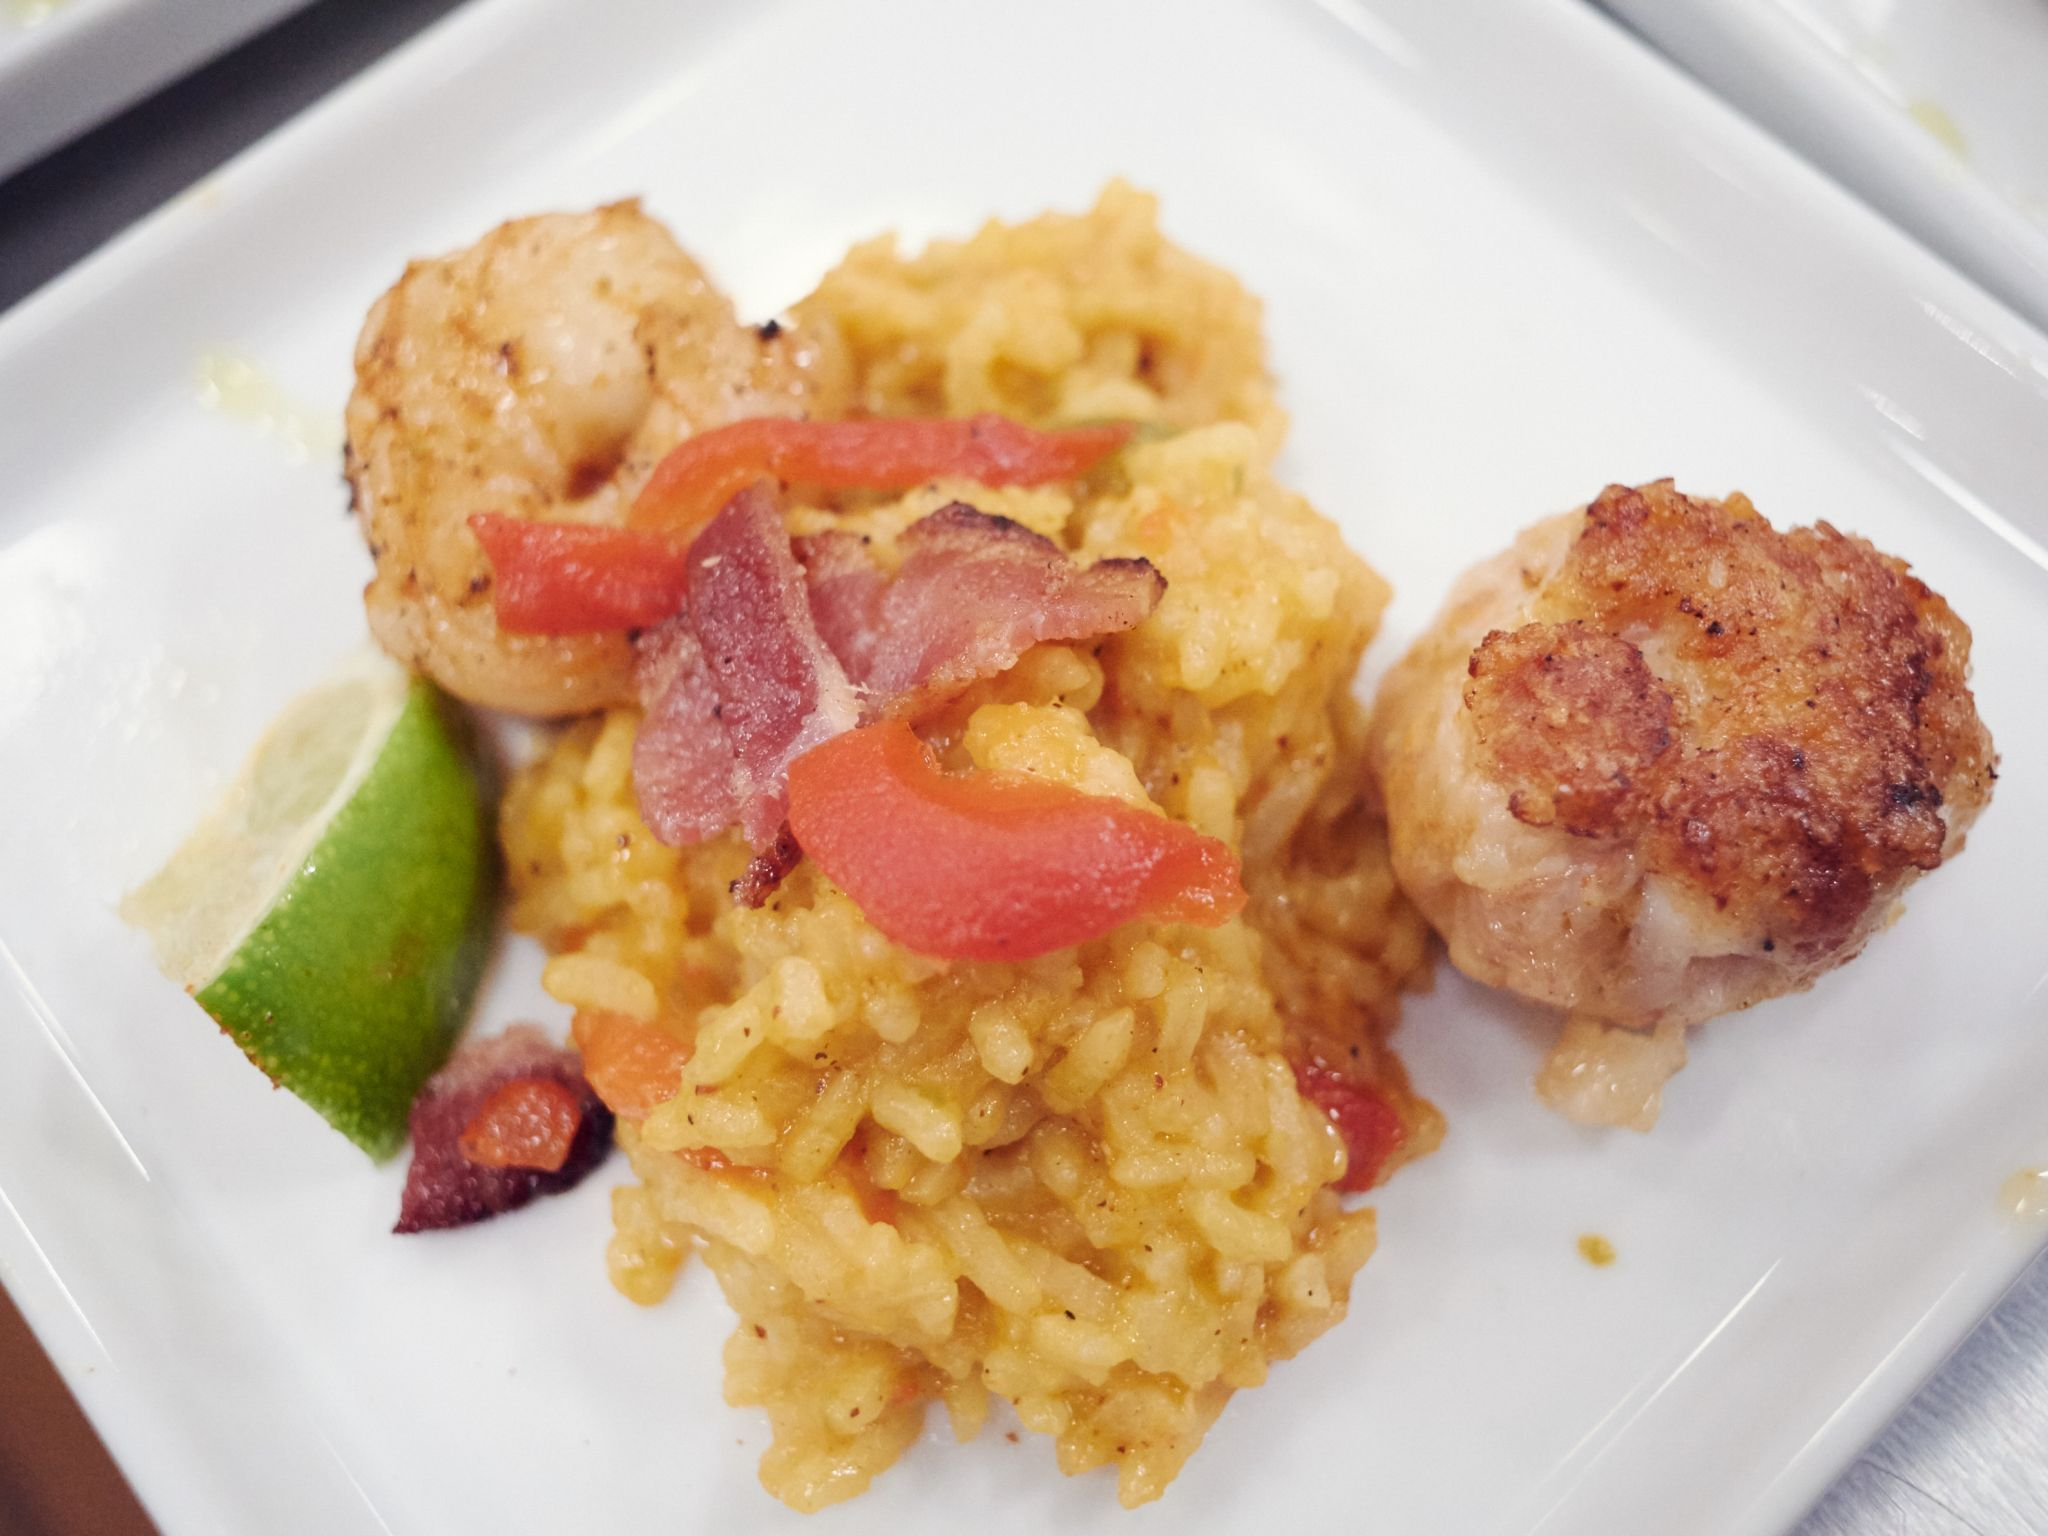 Paella with prosciutto chicken patty receta paella with prosciutto chicken patty forumfinder Choice Image